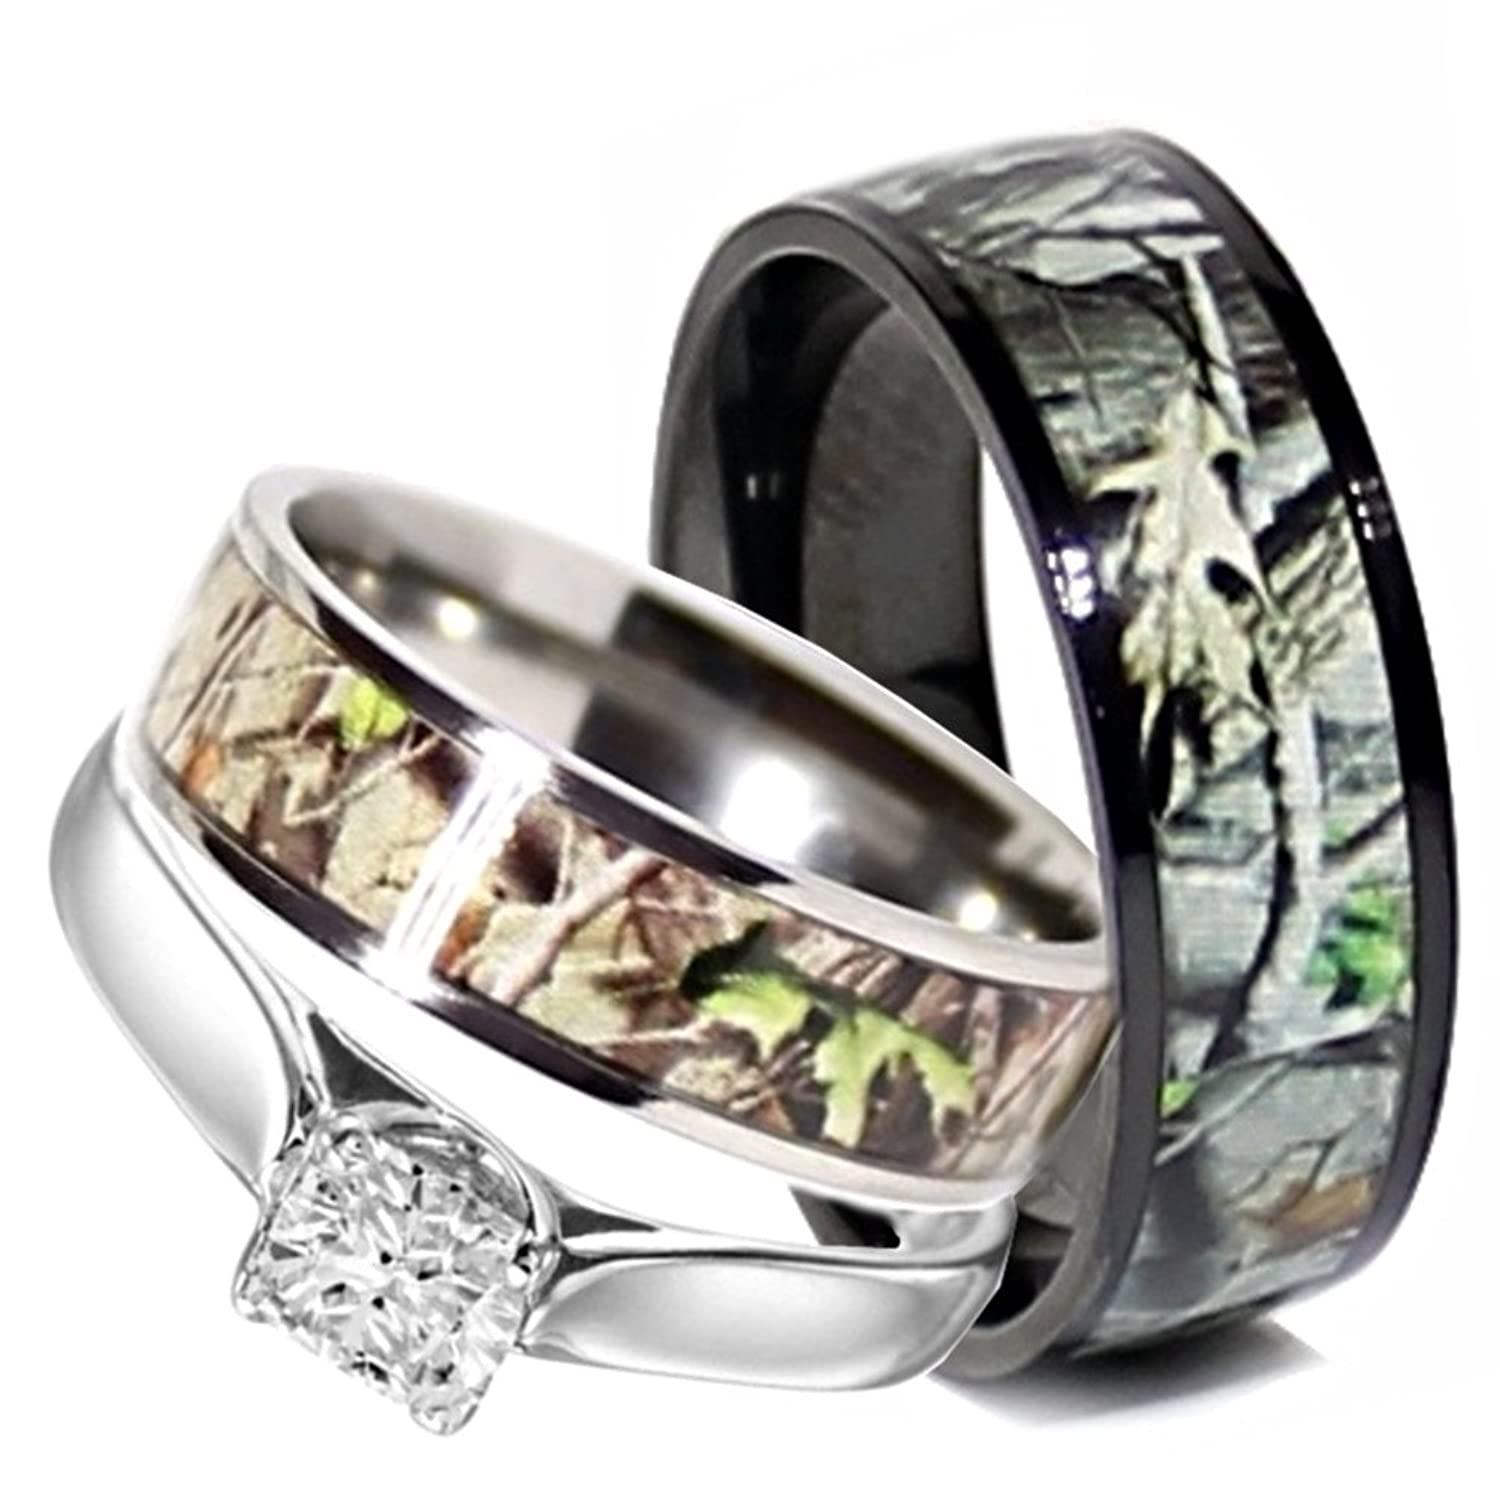 amazoncom camo wedding rings set his and hers 3 rings set sterling silver and titanium size men 10 women 10 jewelry - Camo Wedding Ring Set